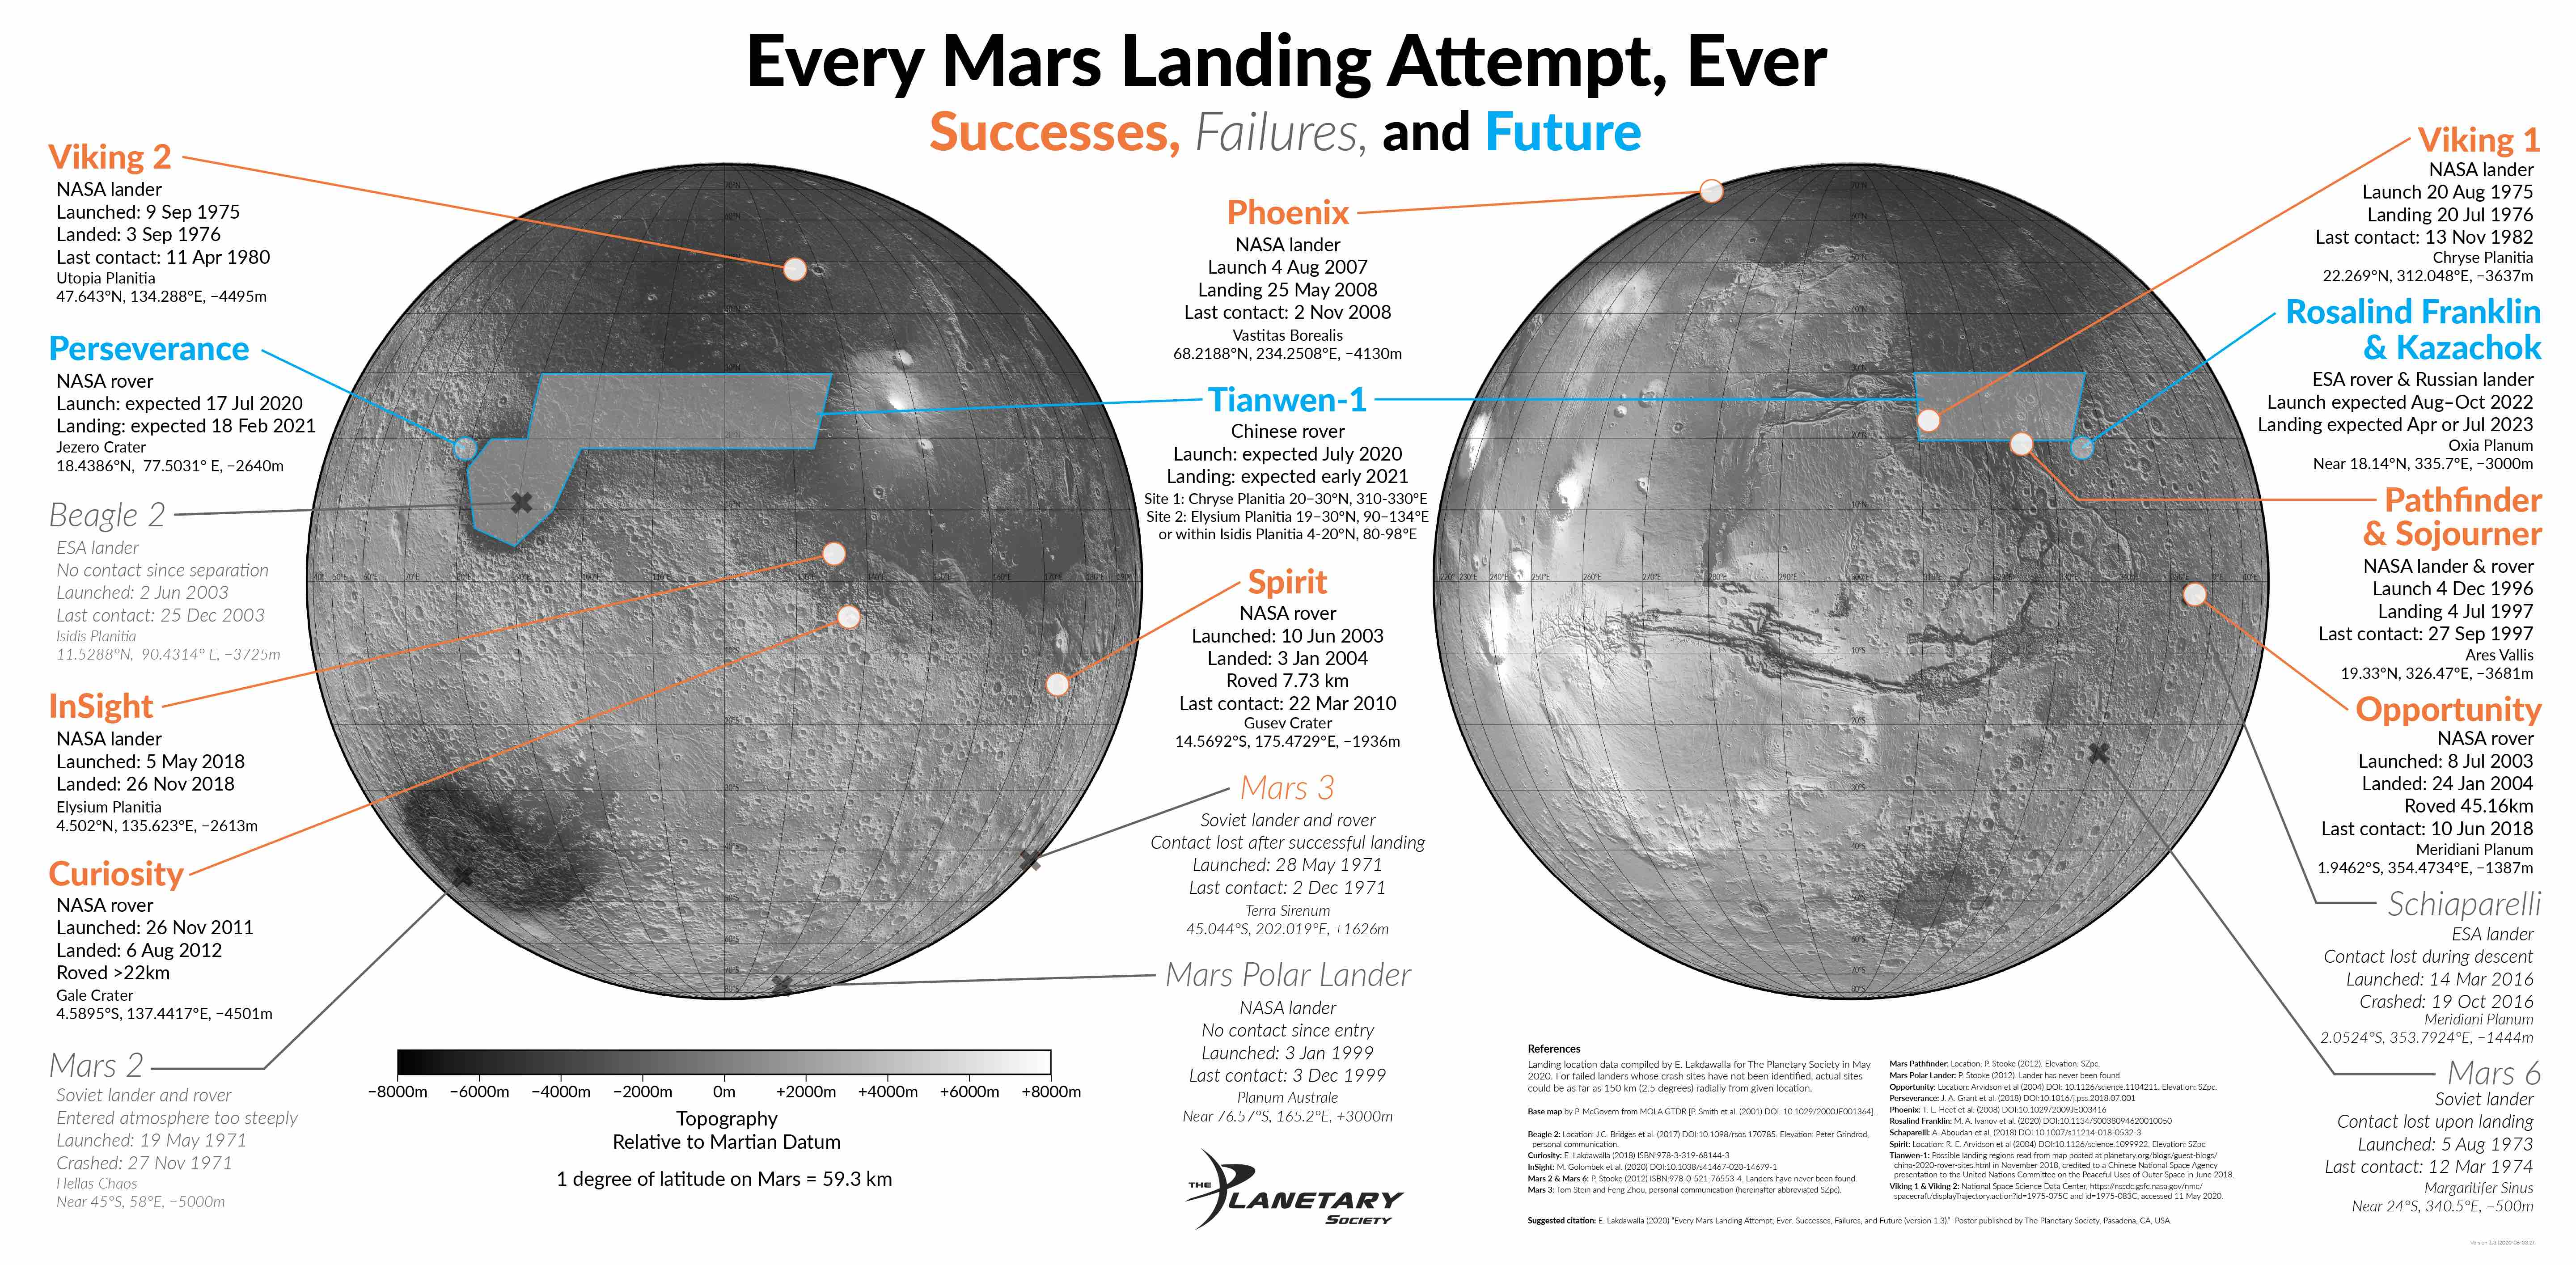 Every Mars Landing Attempt map infographic